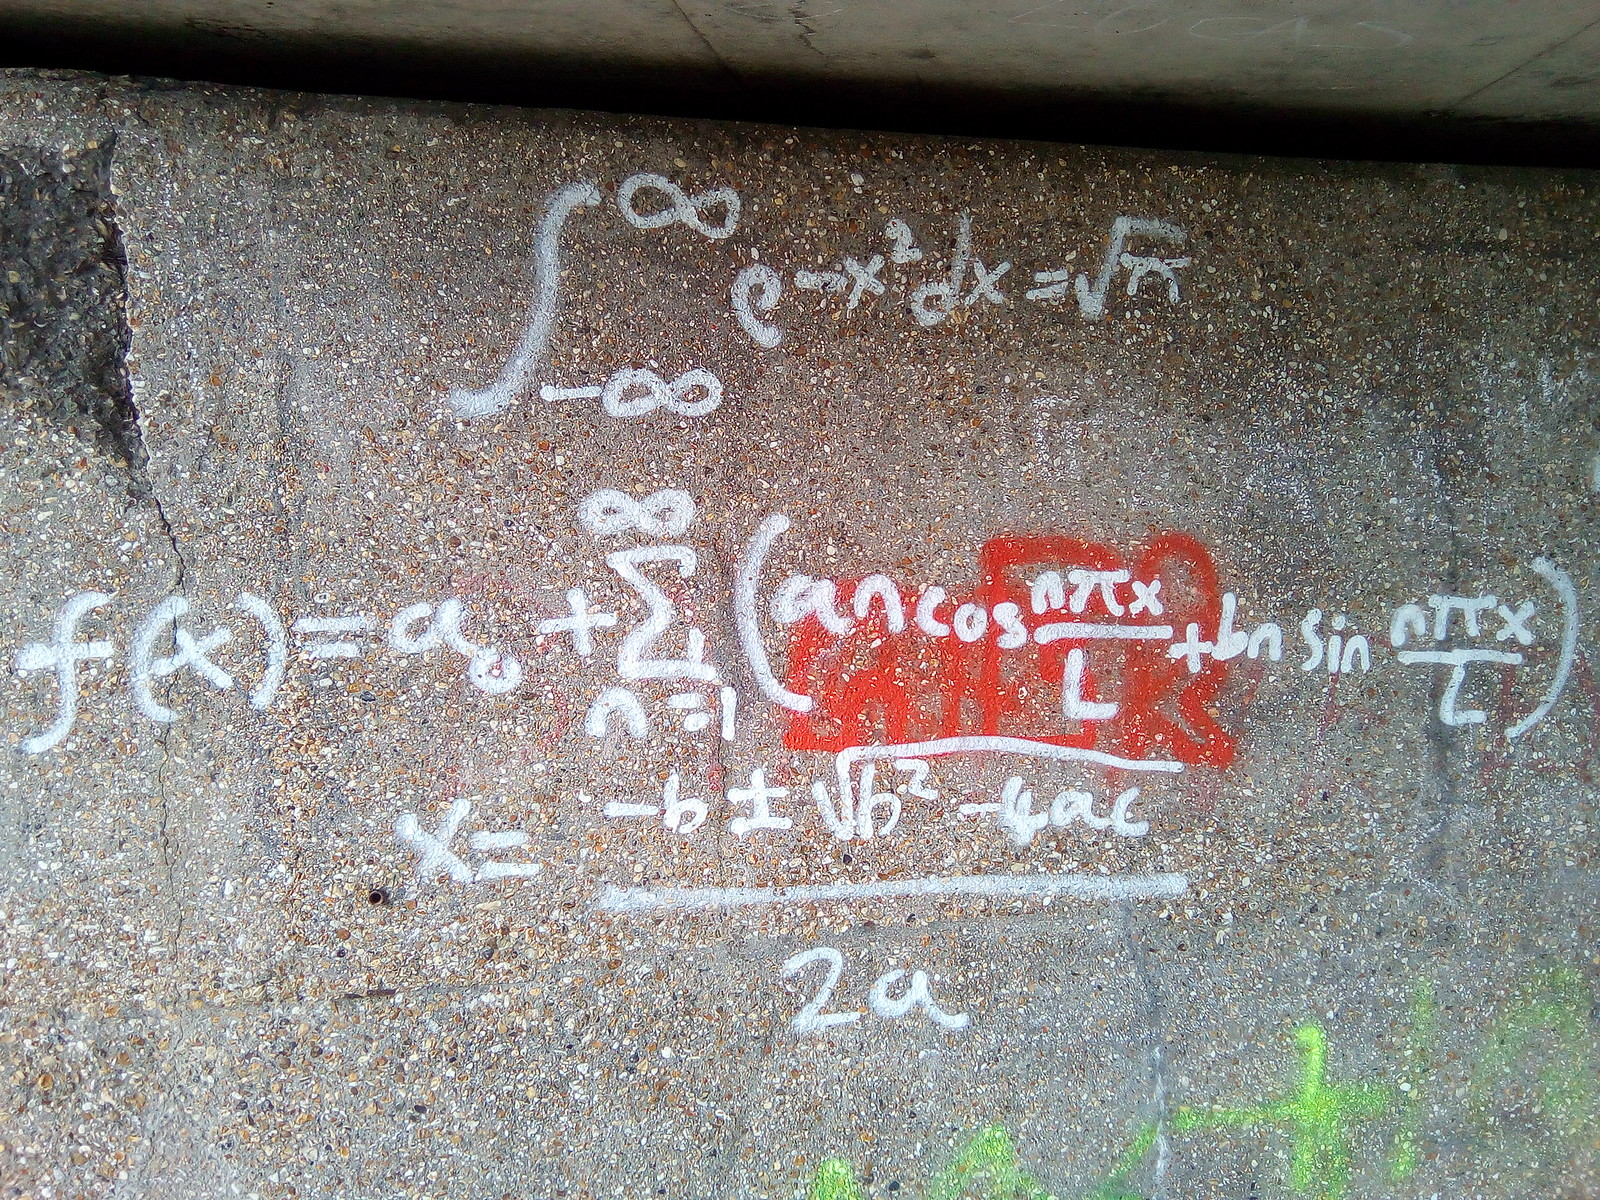 Maths Graffiti No e^-iπ = -1 though!